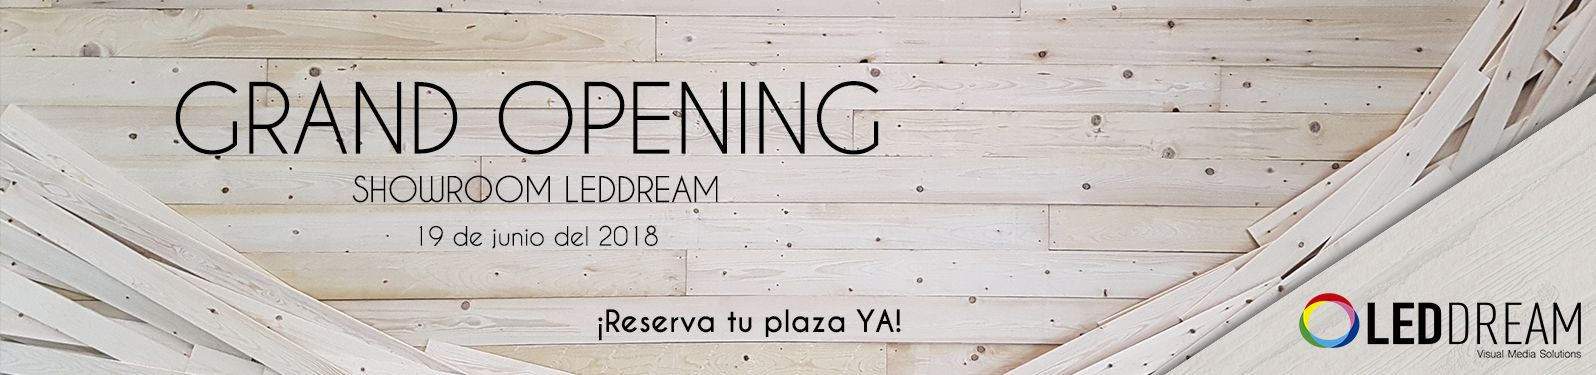 LEDDREAM | Led Dream inagura su nuevo showroom